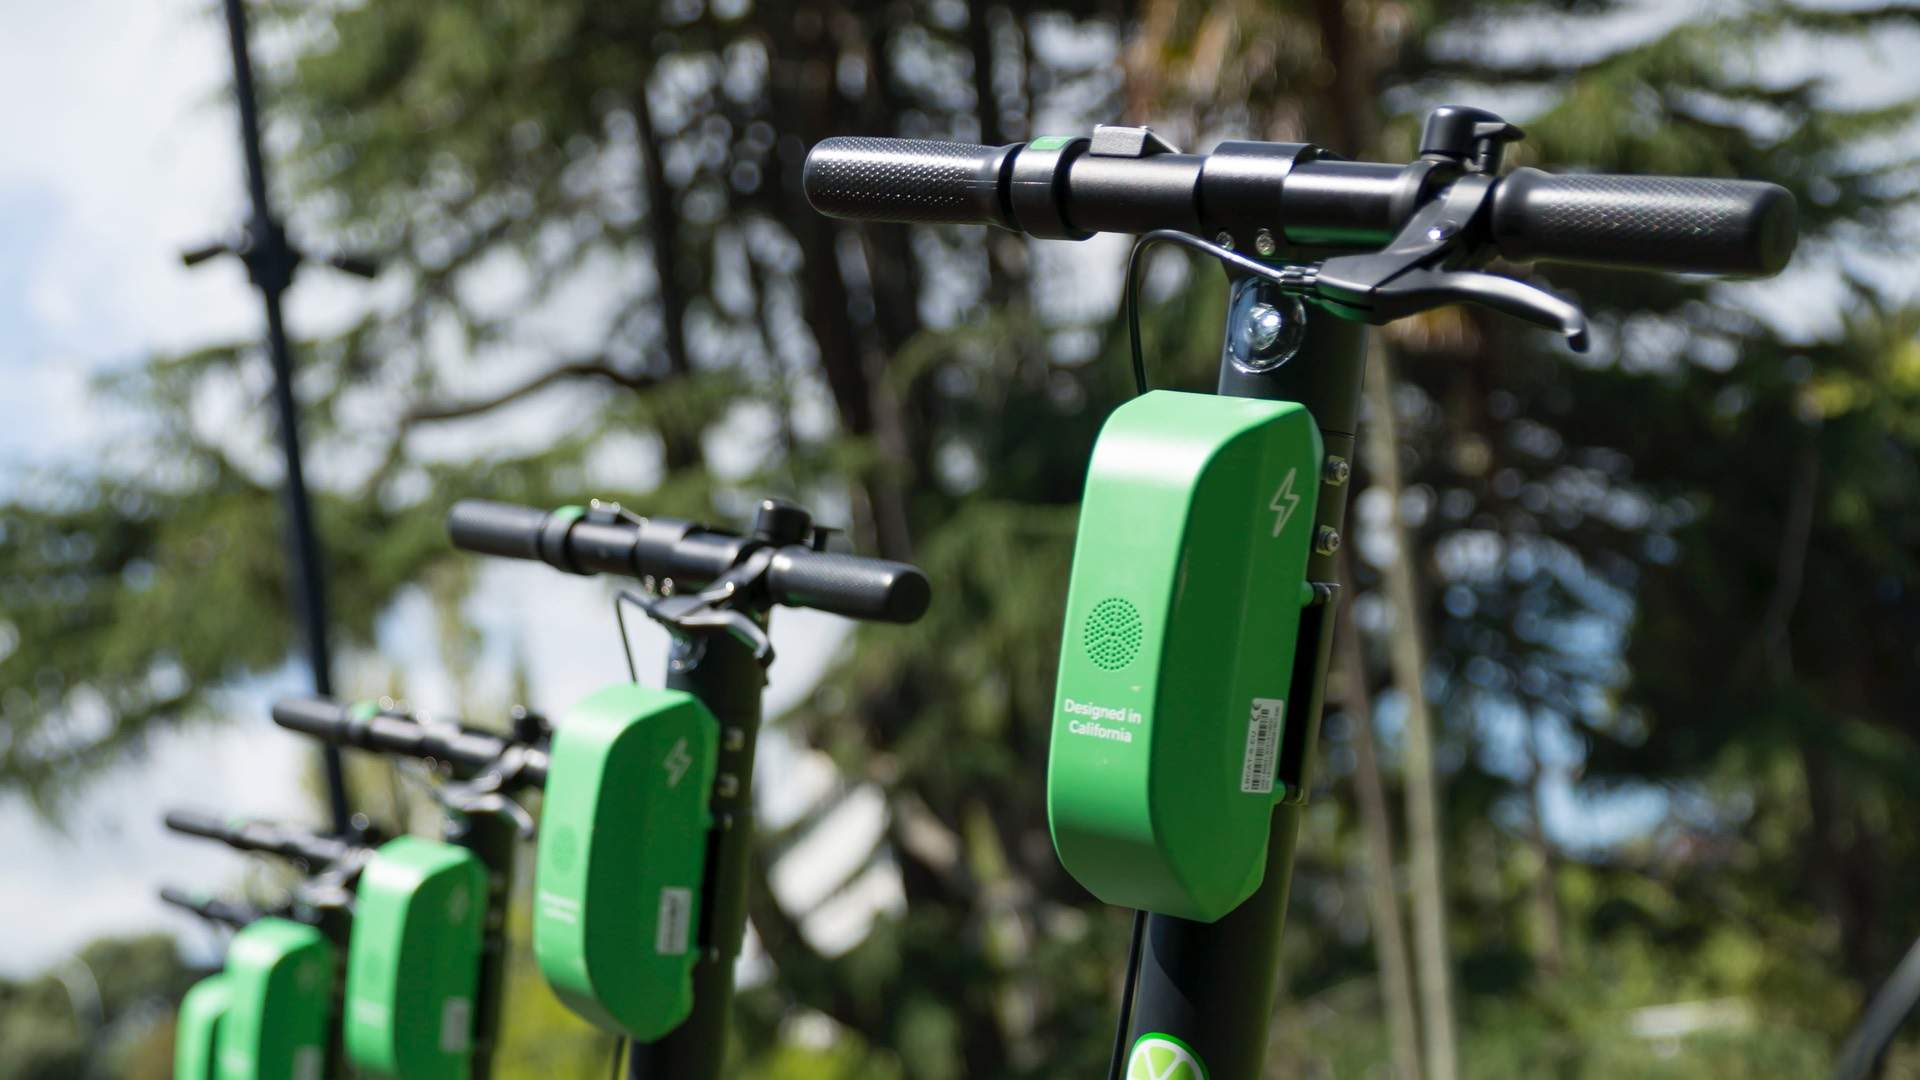 Lime's Dockless Electric Scooter Service Has Launched in Wellington